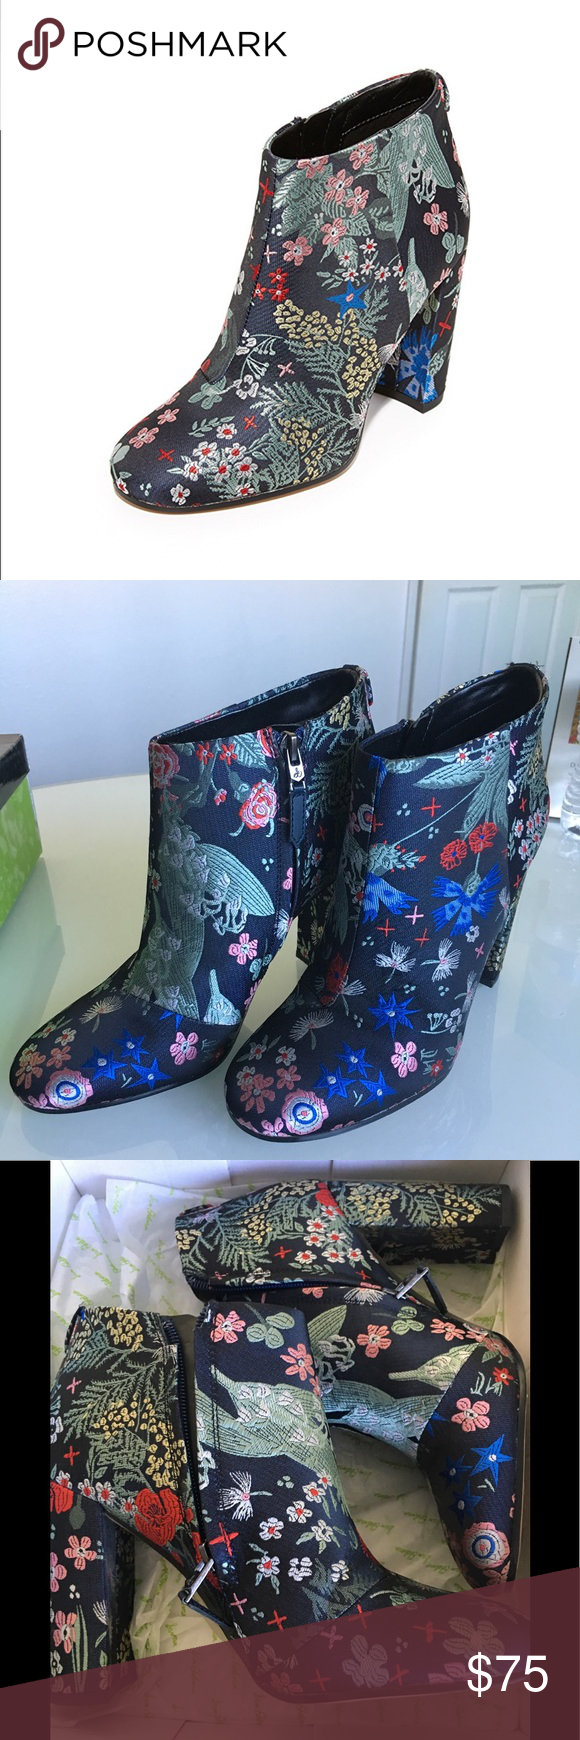 a10cd1addc7b0f Sam Edelman Floral Boot PERFECT CONDITION Sam Edelman Cambell Floral Boot A  super fun lively floral